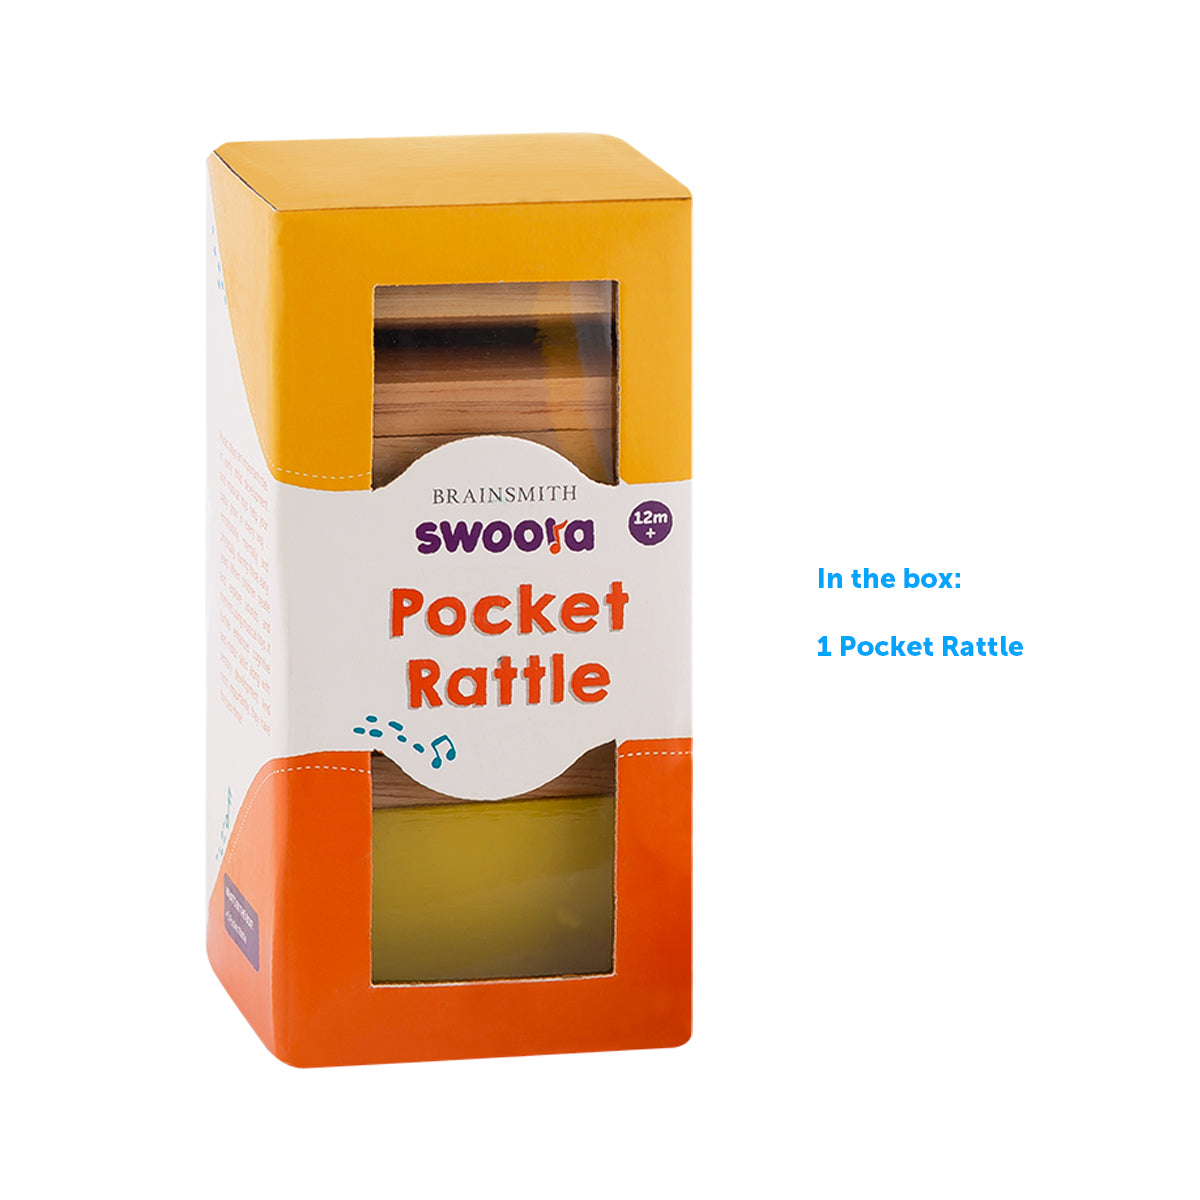 Pocket Rattle